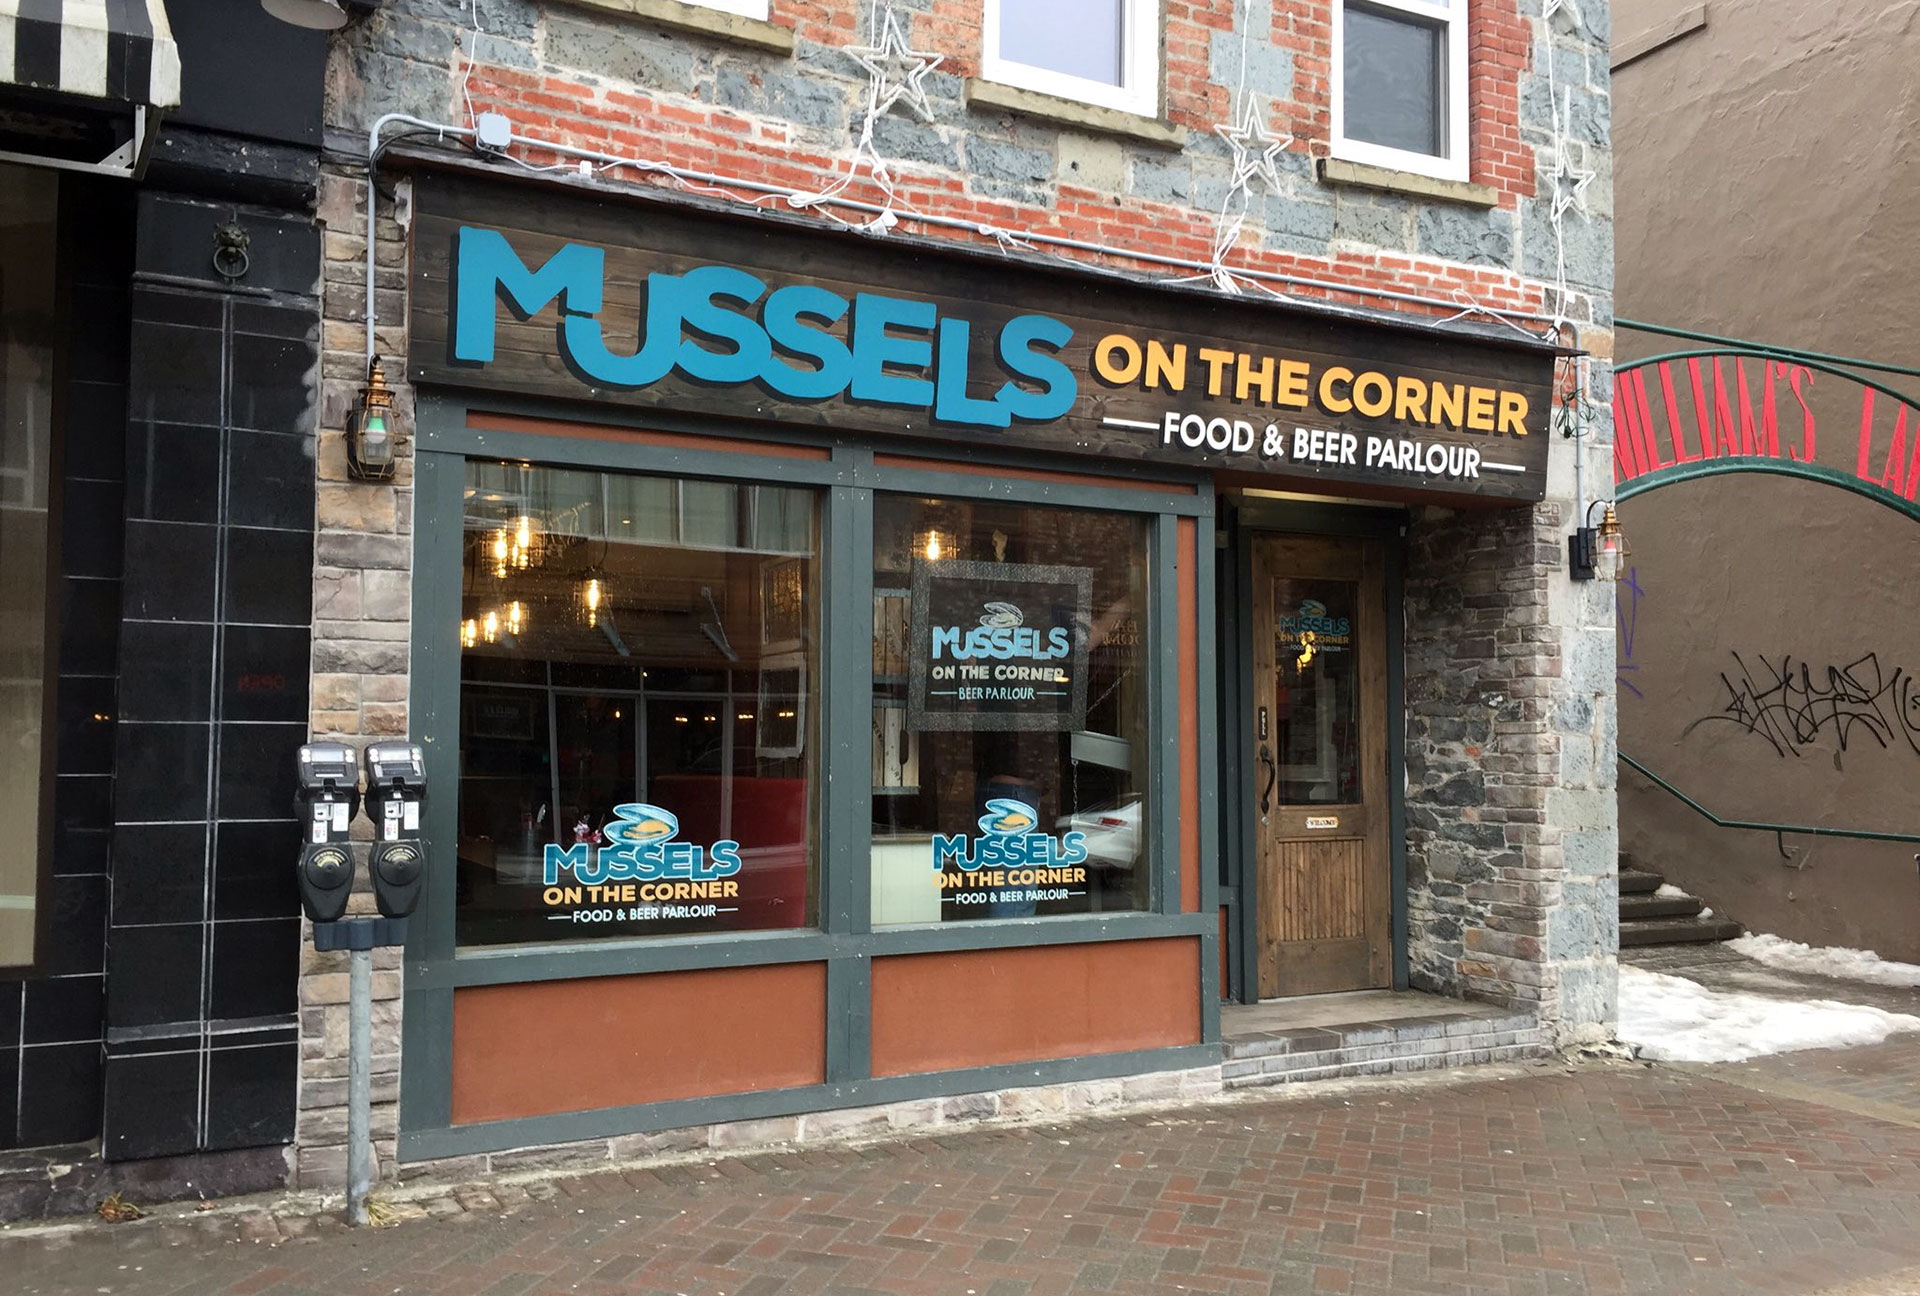 Mussels On The Corner